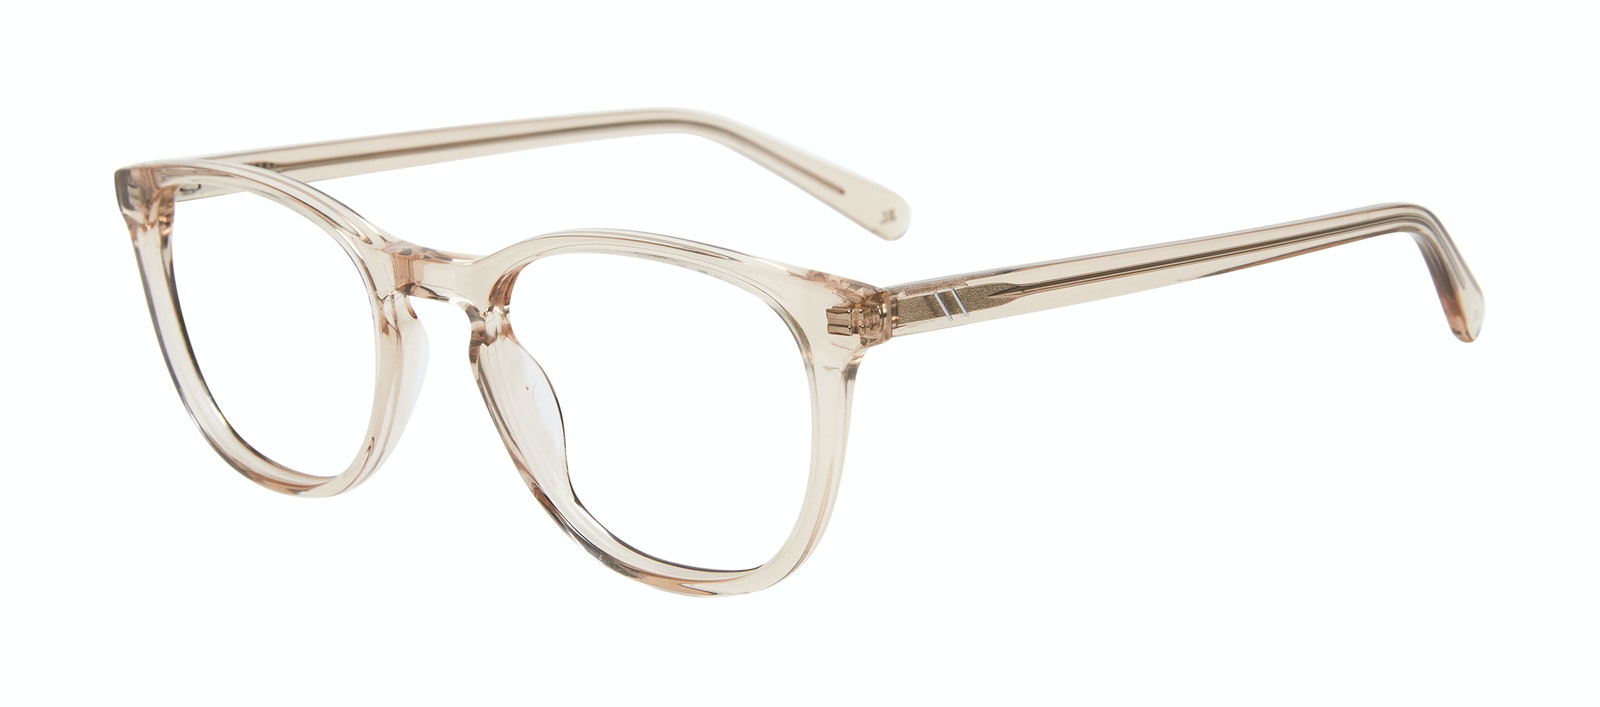 Affordable Fashion Glasses Square Eyeglasses Men Swerve Golden Tilt